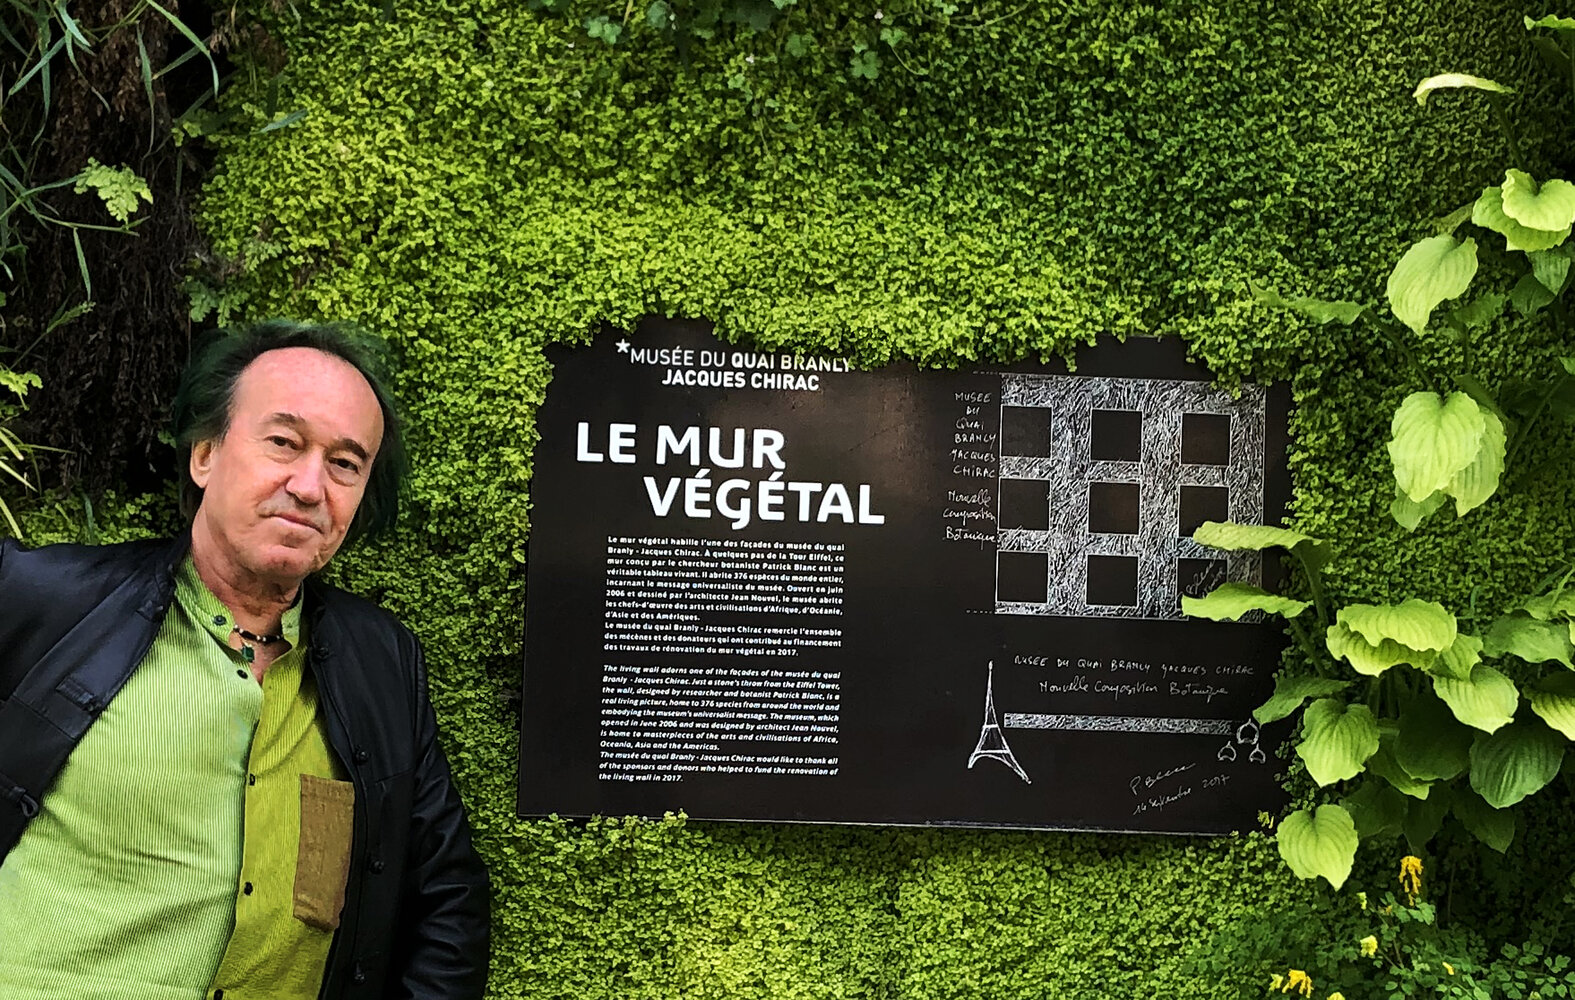 Patrick Blanc and the billboard explaining the concept of his vertical garden at the Quai Branly - Jacques Chirac Museum, Paris, May 2020. Copyright Pascal Heni.